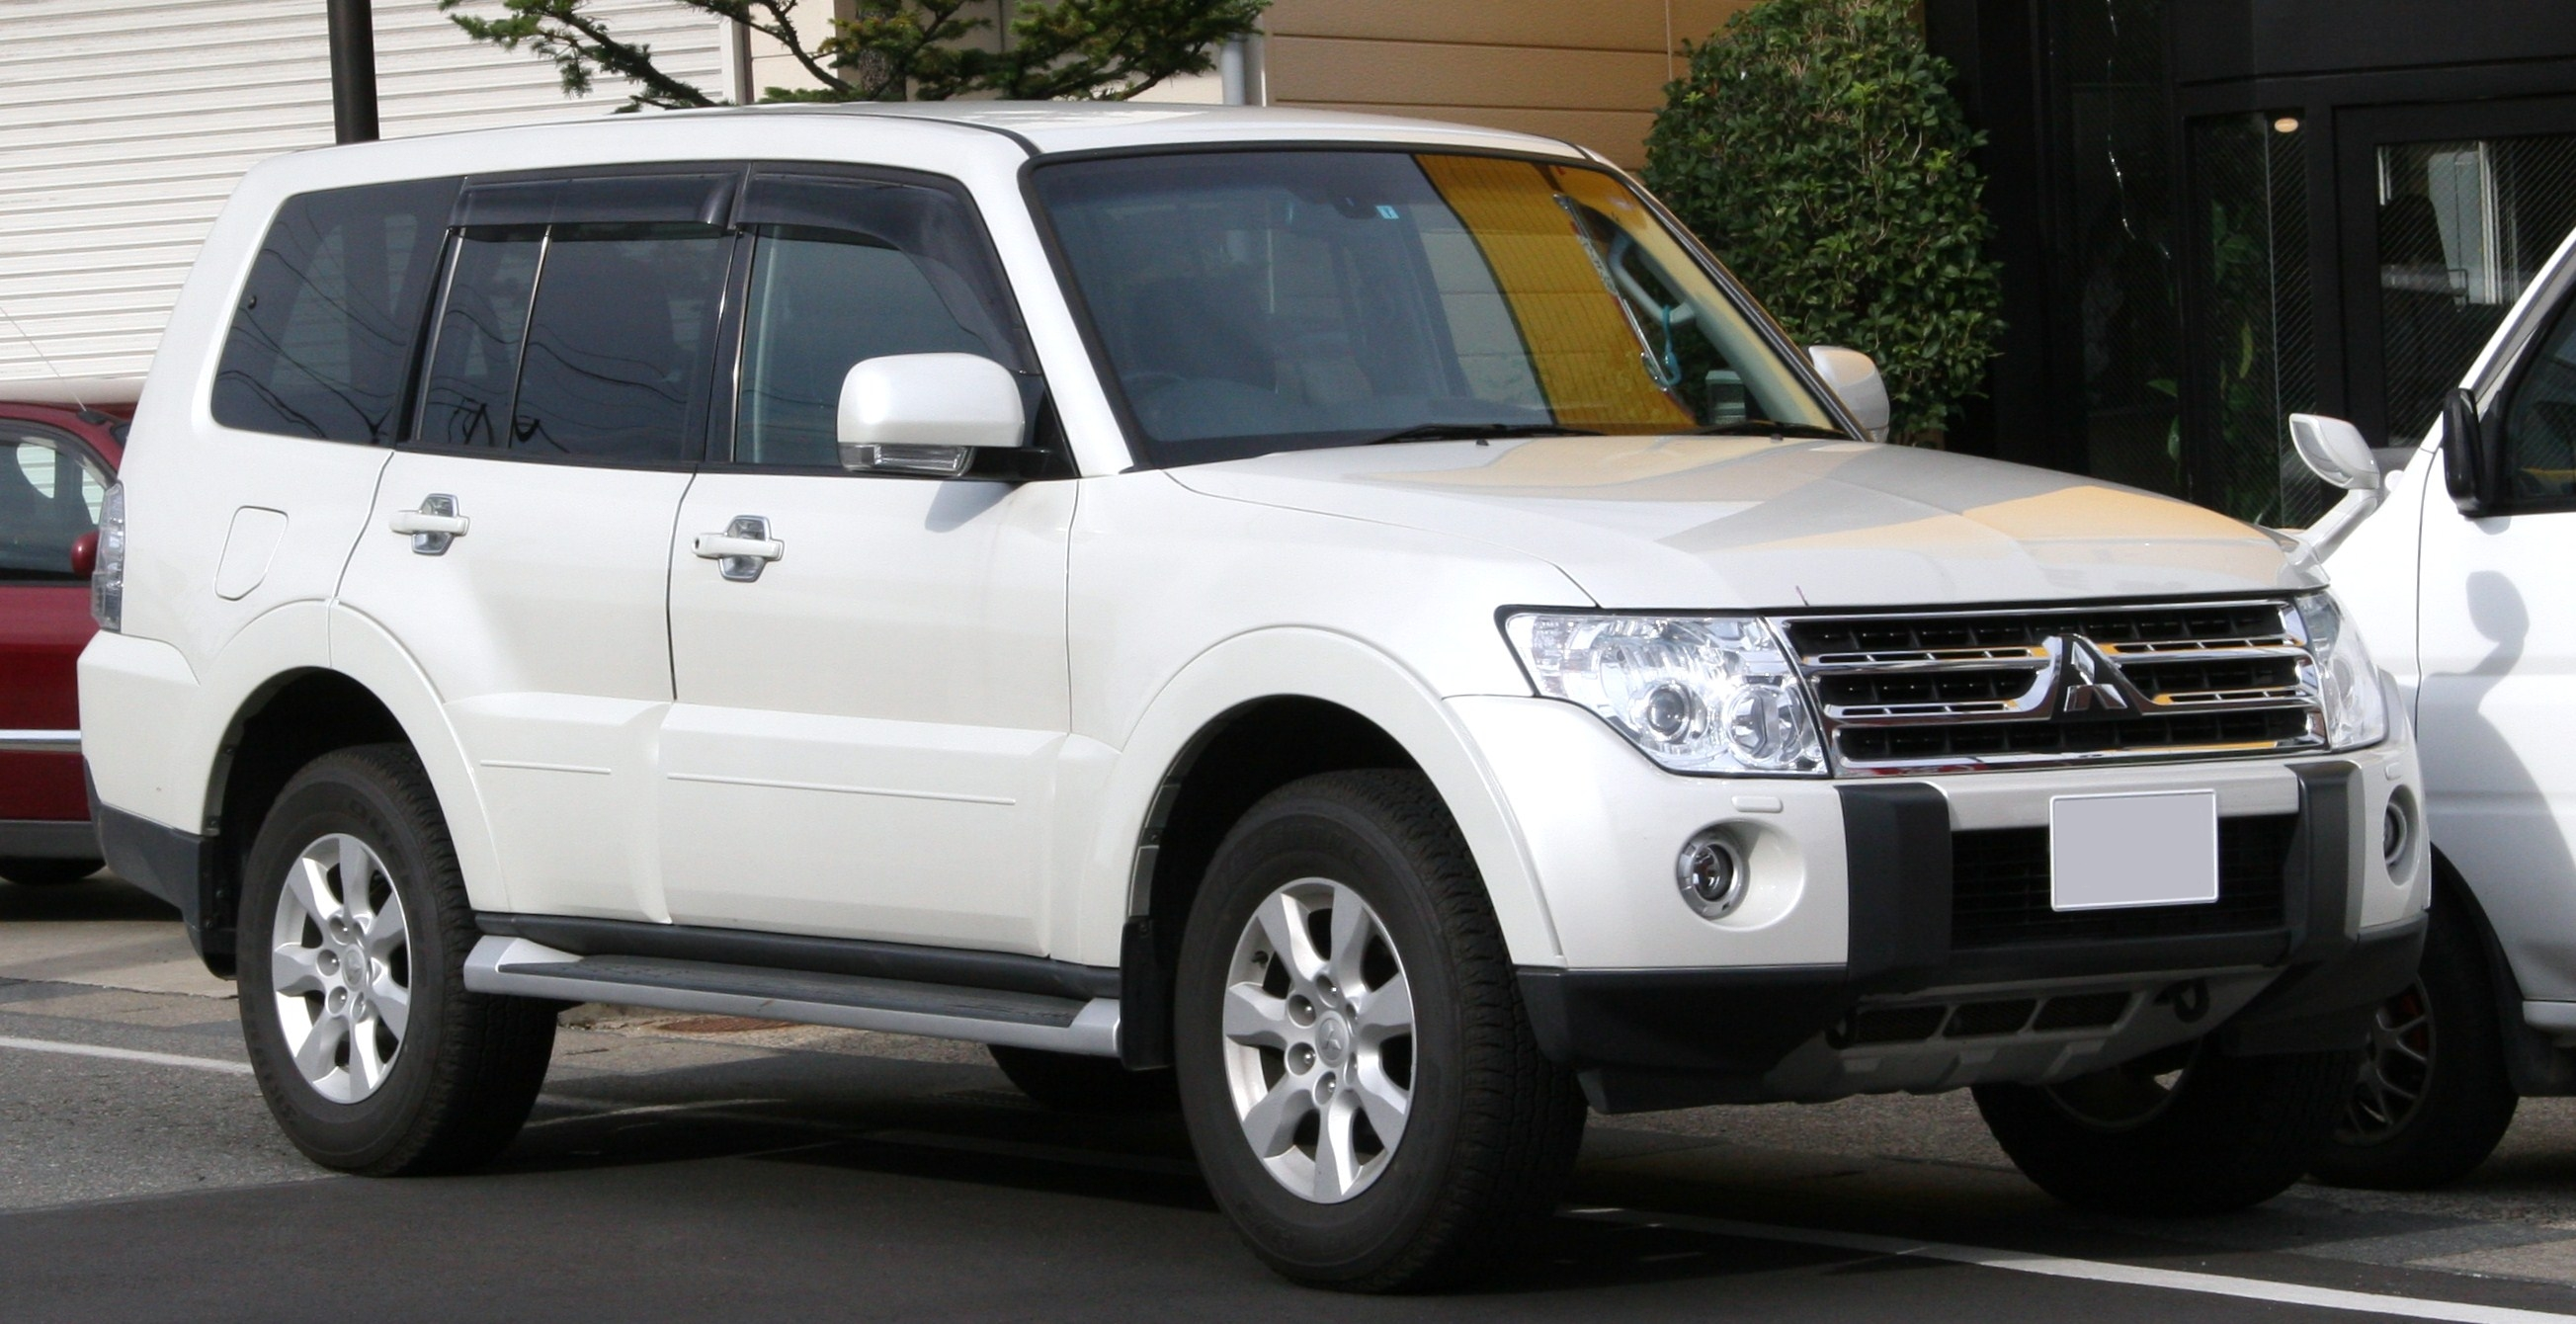 Mitsubishi Pajero IV Restyling 2 2014 - now SUV 5 door #5